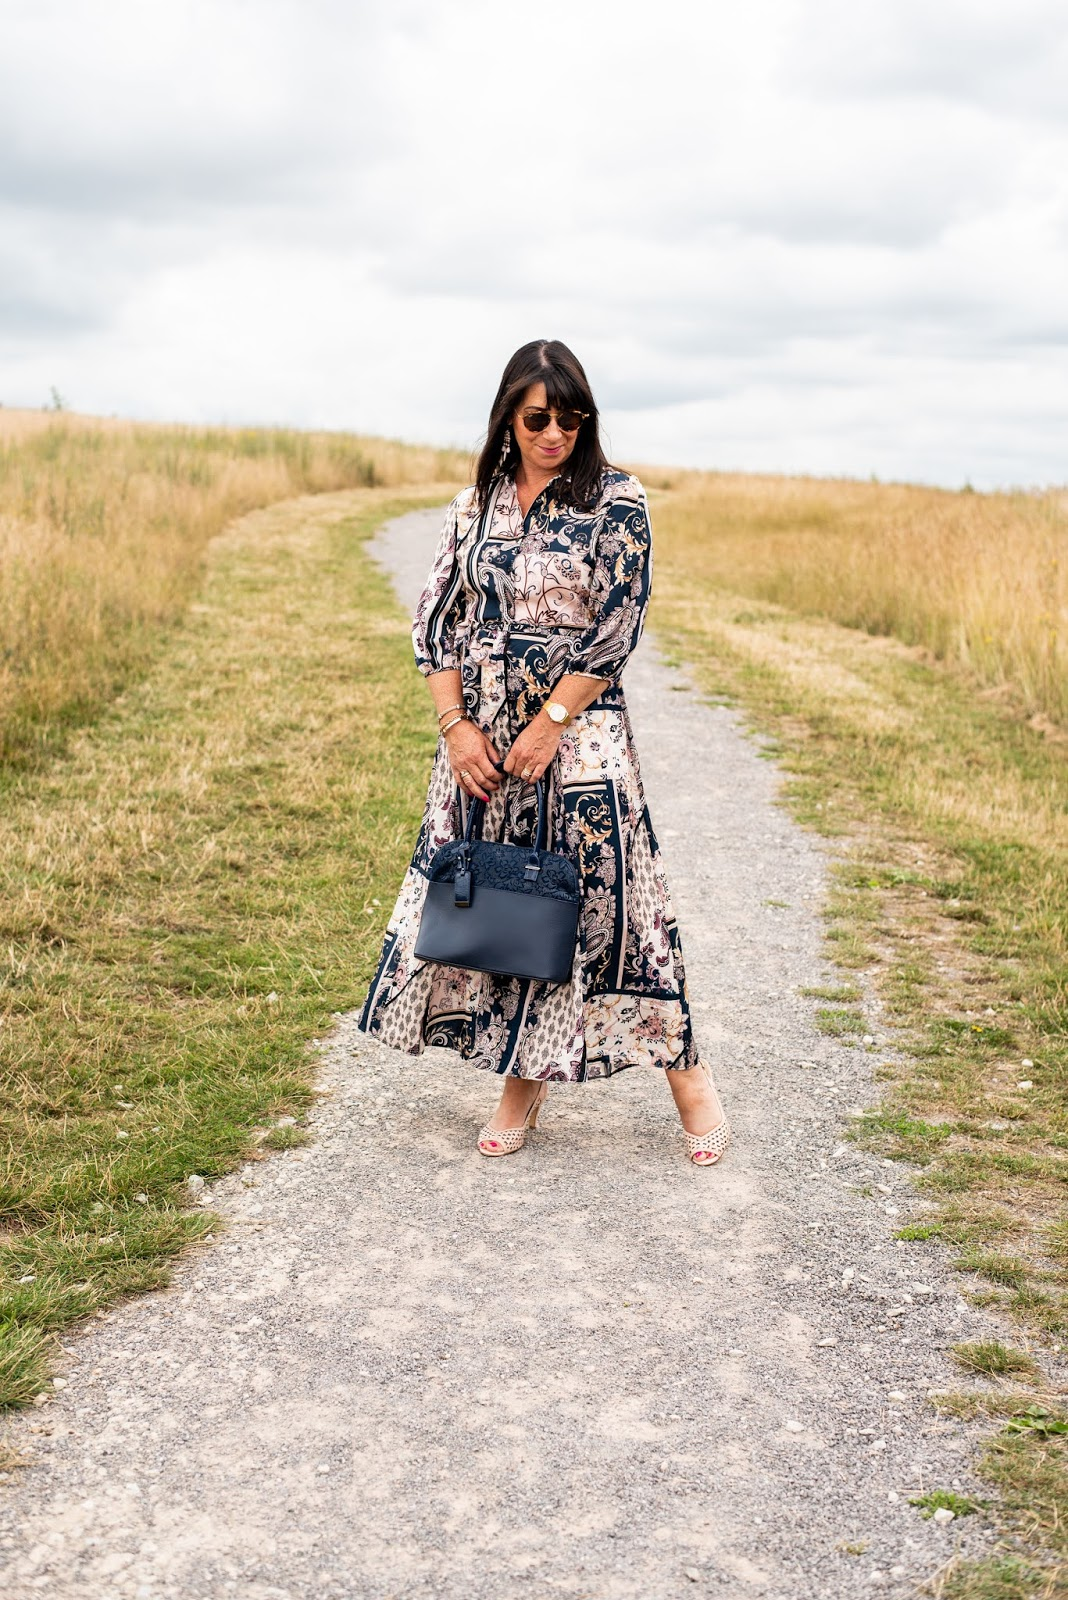 In the Signature Color challenge Jacqui Berry has chosen a pink and dark blue print dress and paired it with a blue bag and pale pink sling back shoes.